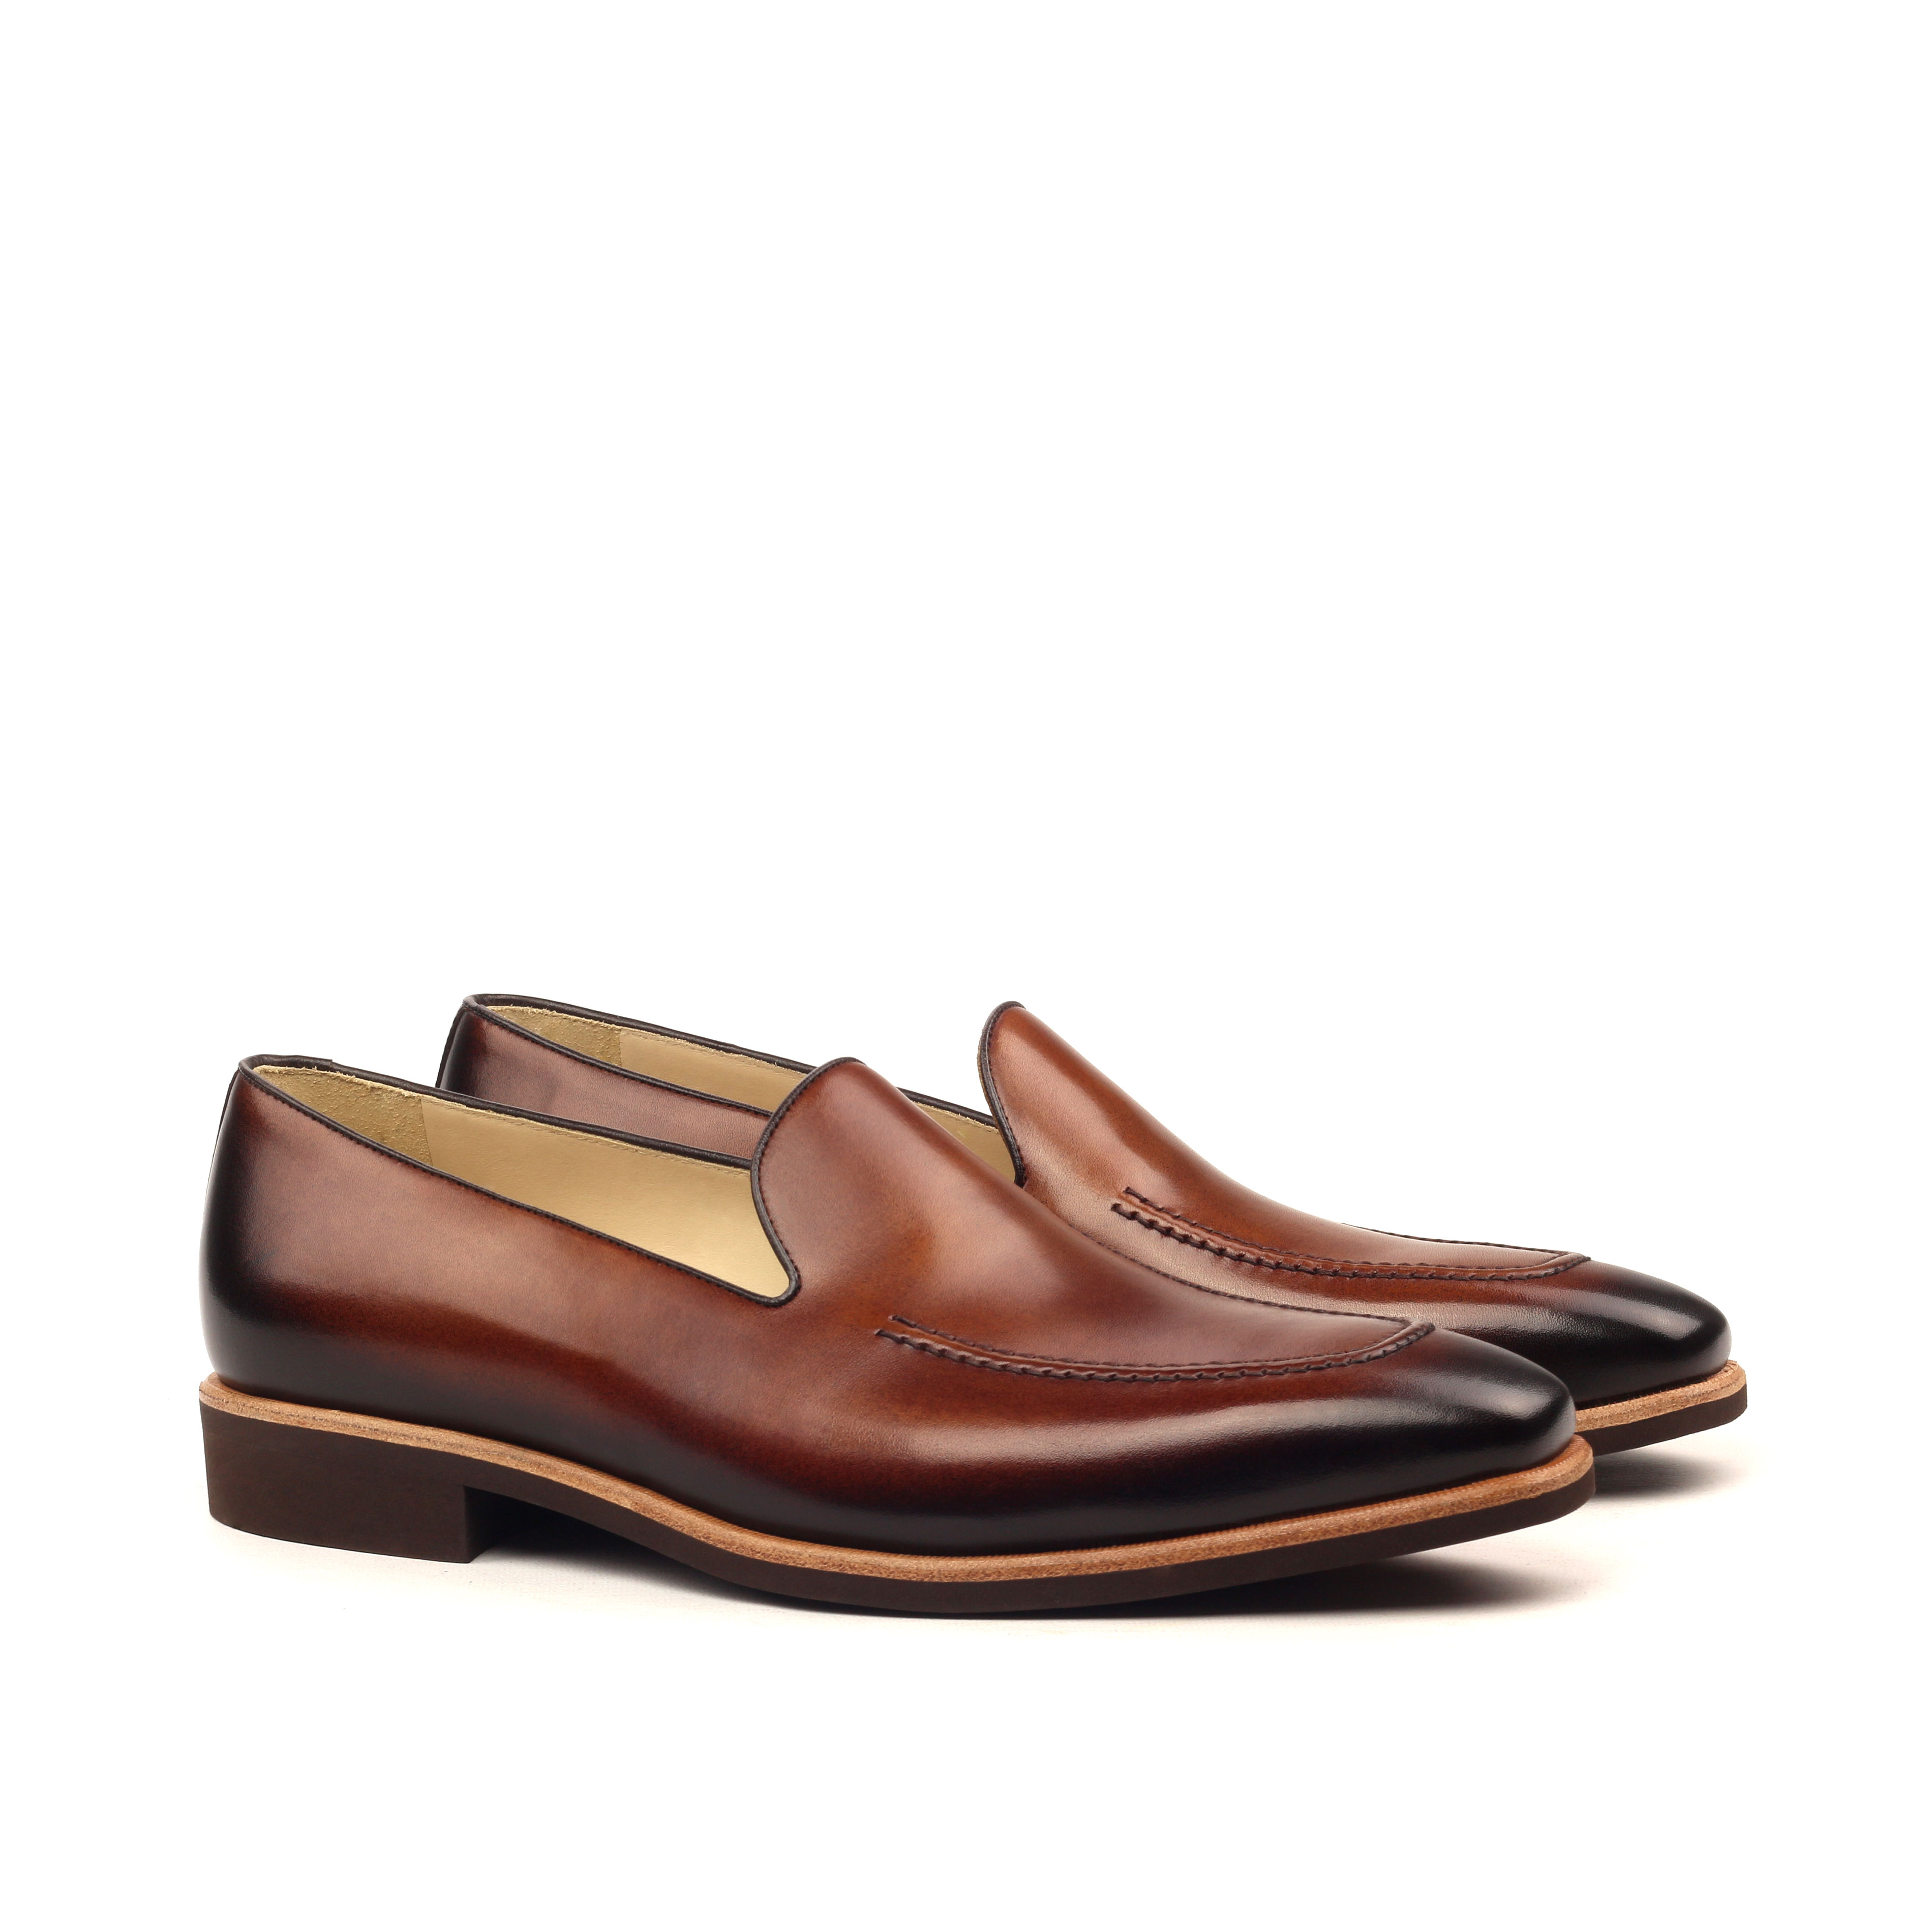 Loafer Plain – Light Burnishing-Painted Calf Med Brown And Dark Brown-Ang5